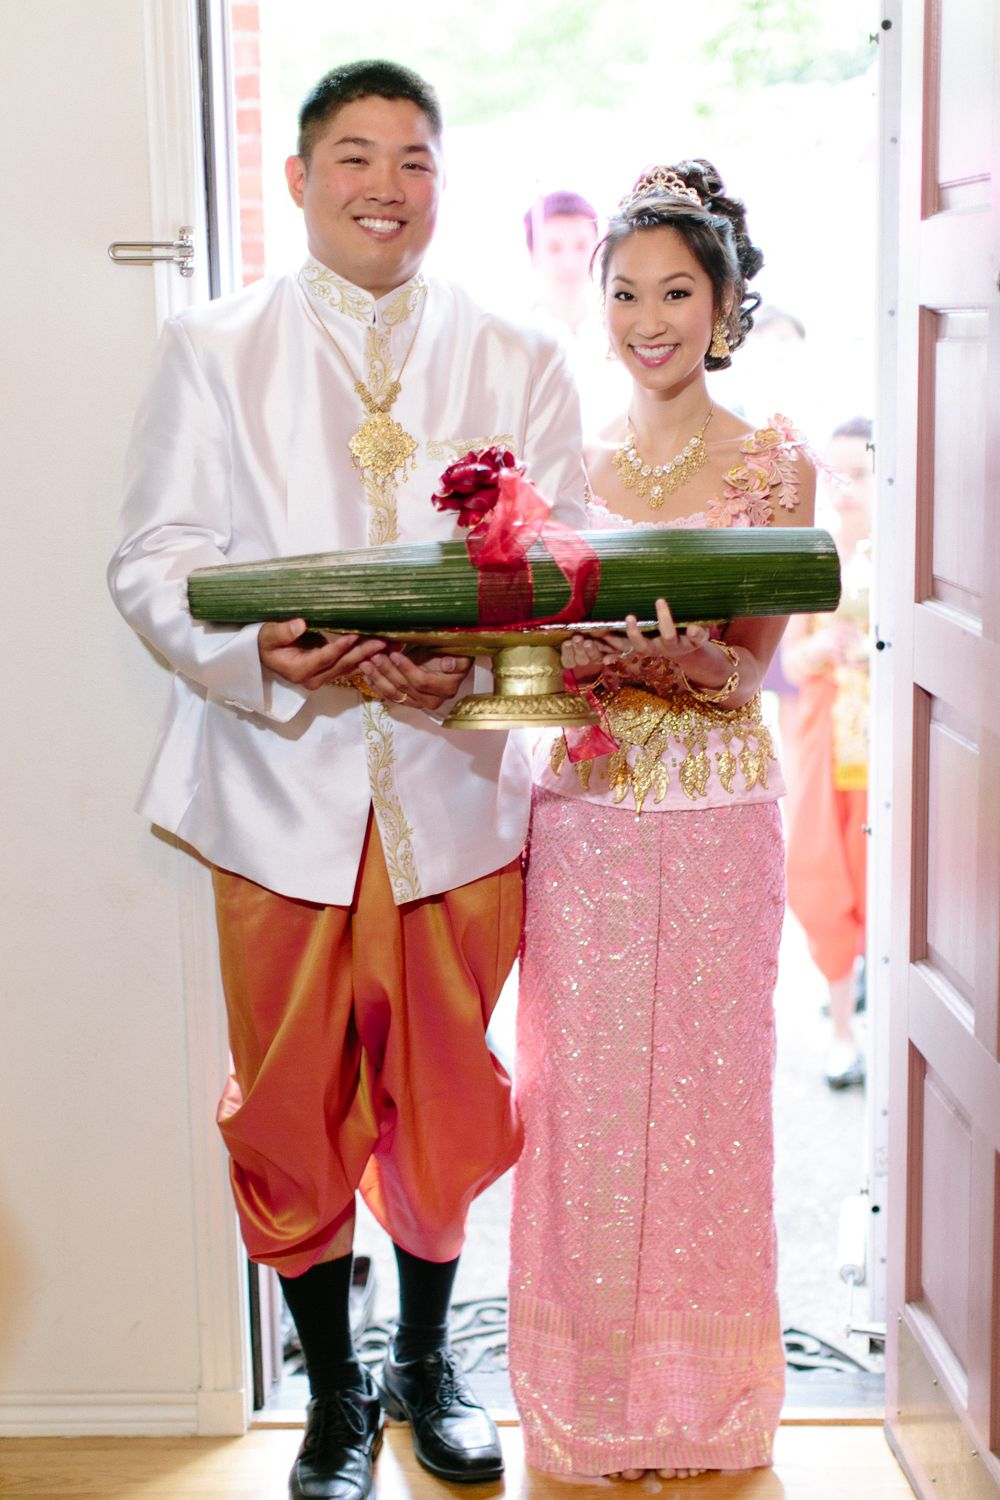 Cambodian wedding #khmer | Khmer | Pinterest | Cambodian wedding ...